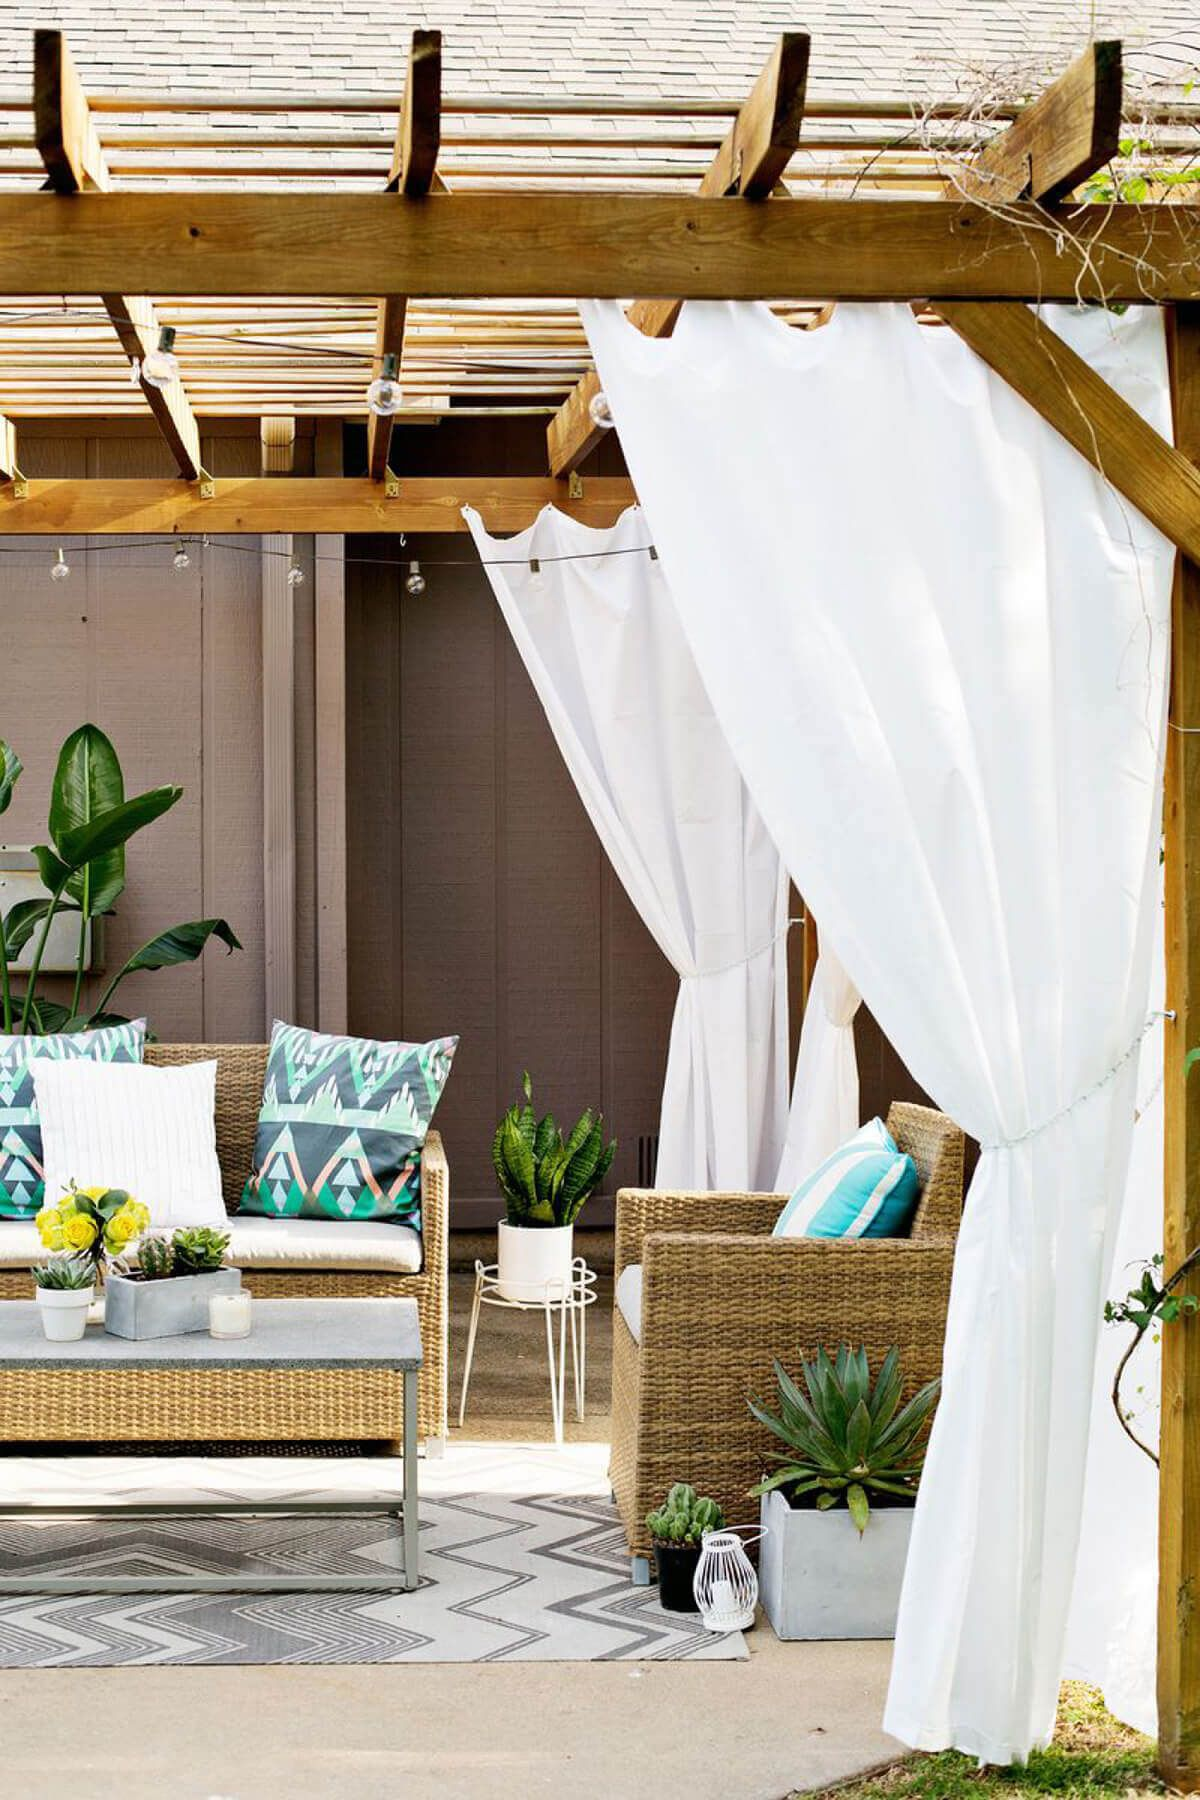 22 Easy Diy Sun Shade Ideas For Your Backyard Or Patio Outdoor Pergola Curtains Outdoor Pergola Patio Projects